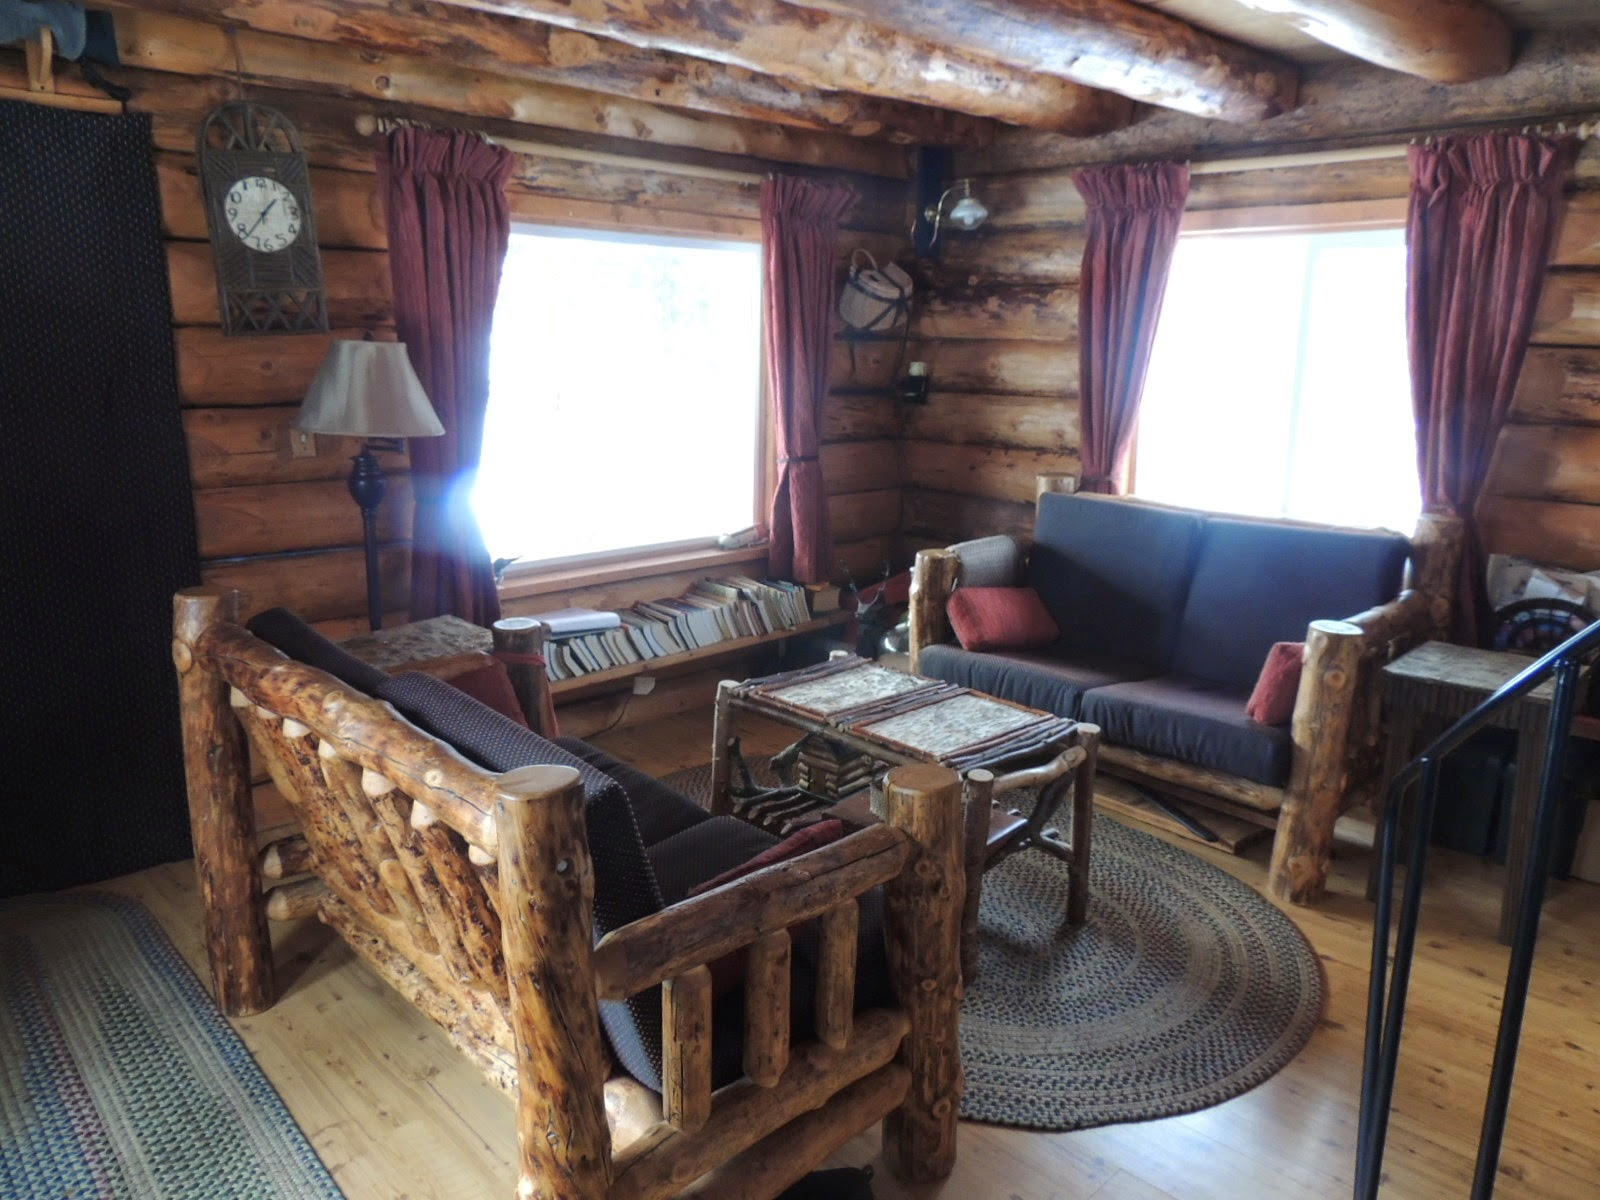 Alaska bush life off road off grid intentional living for Alaska cottage